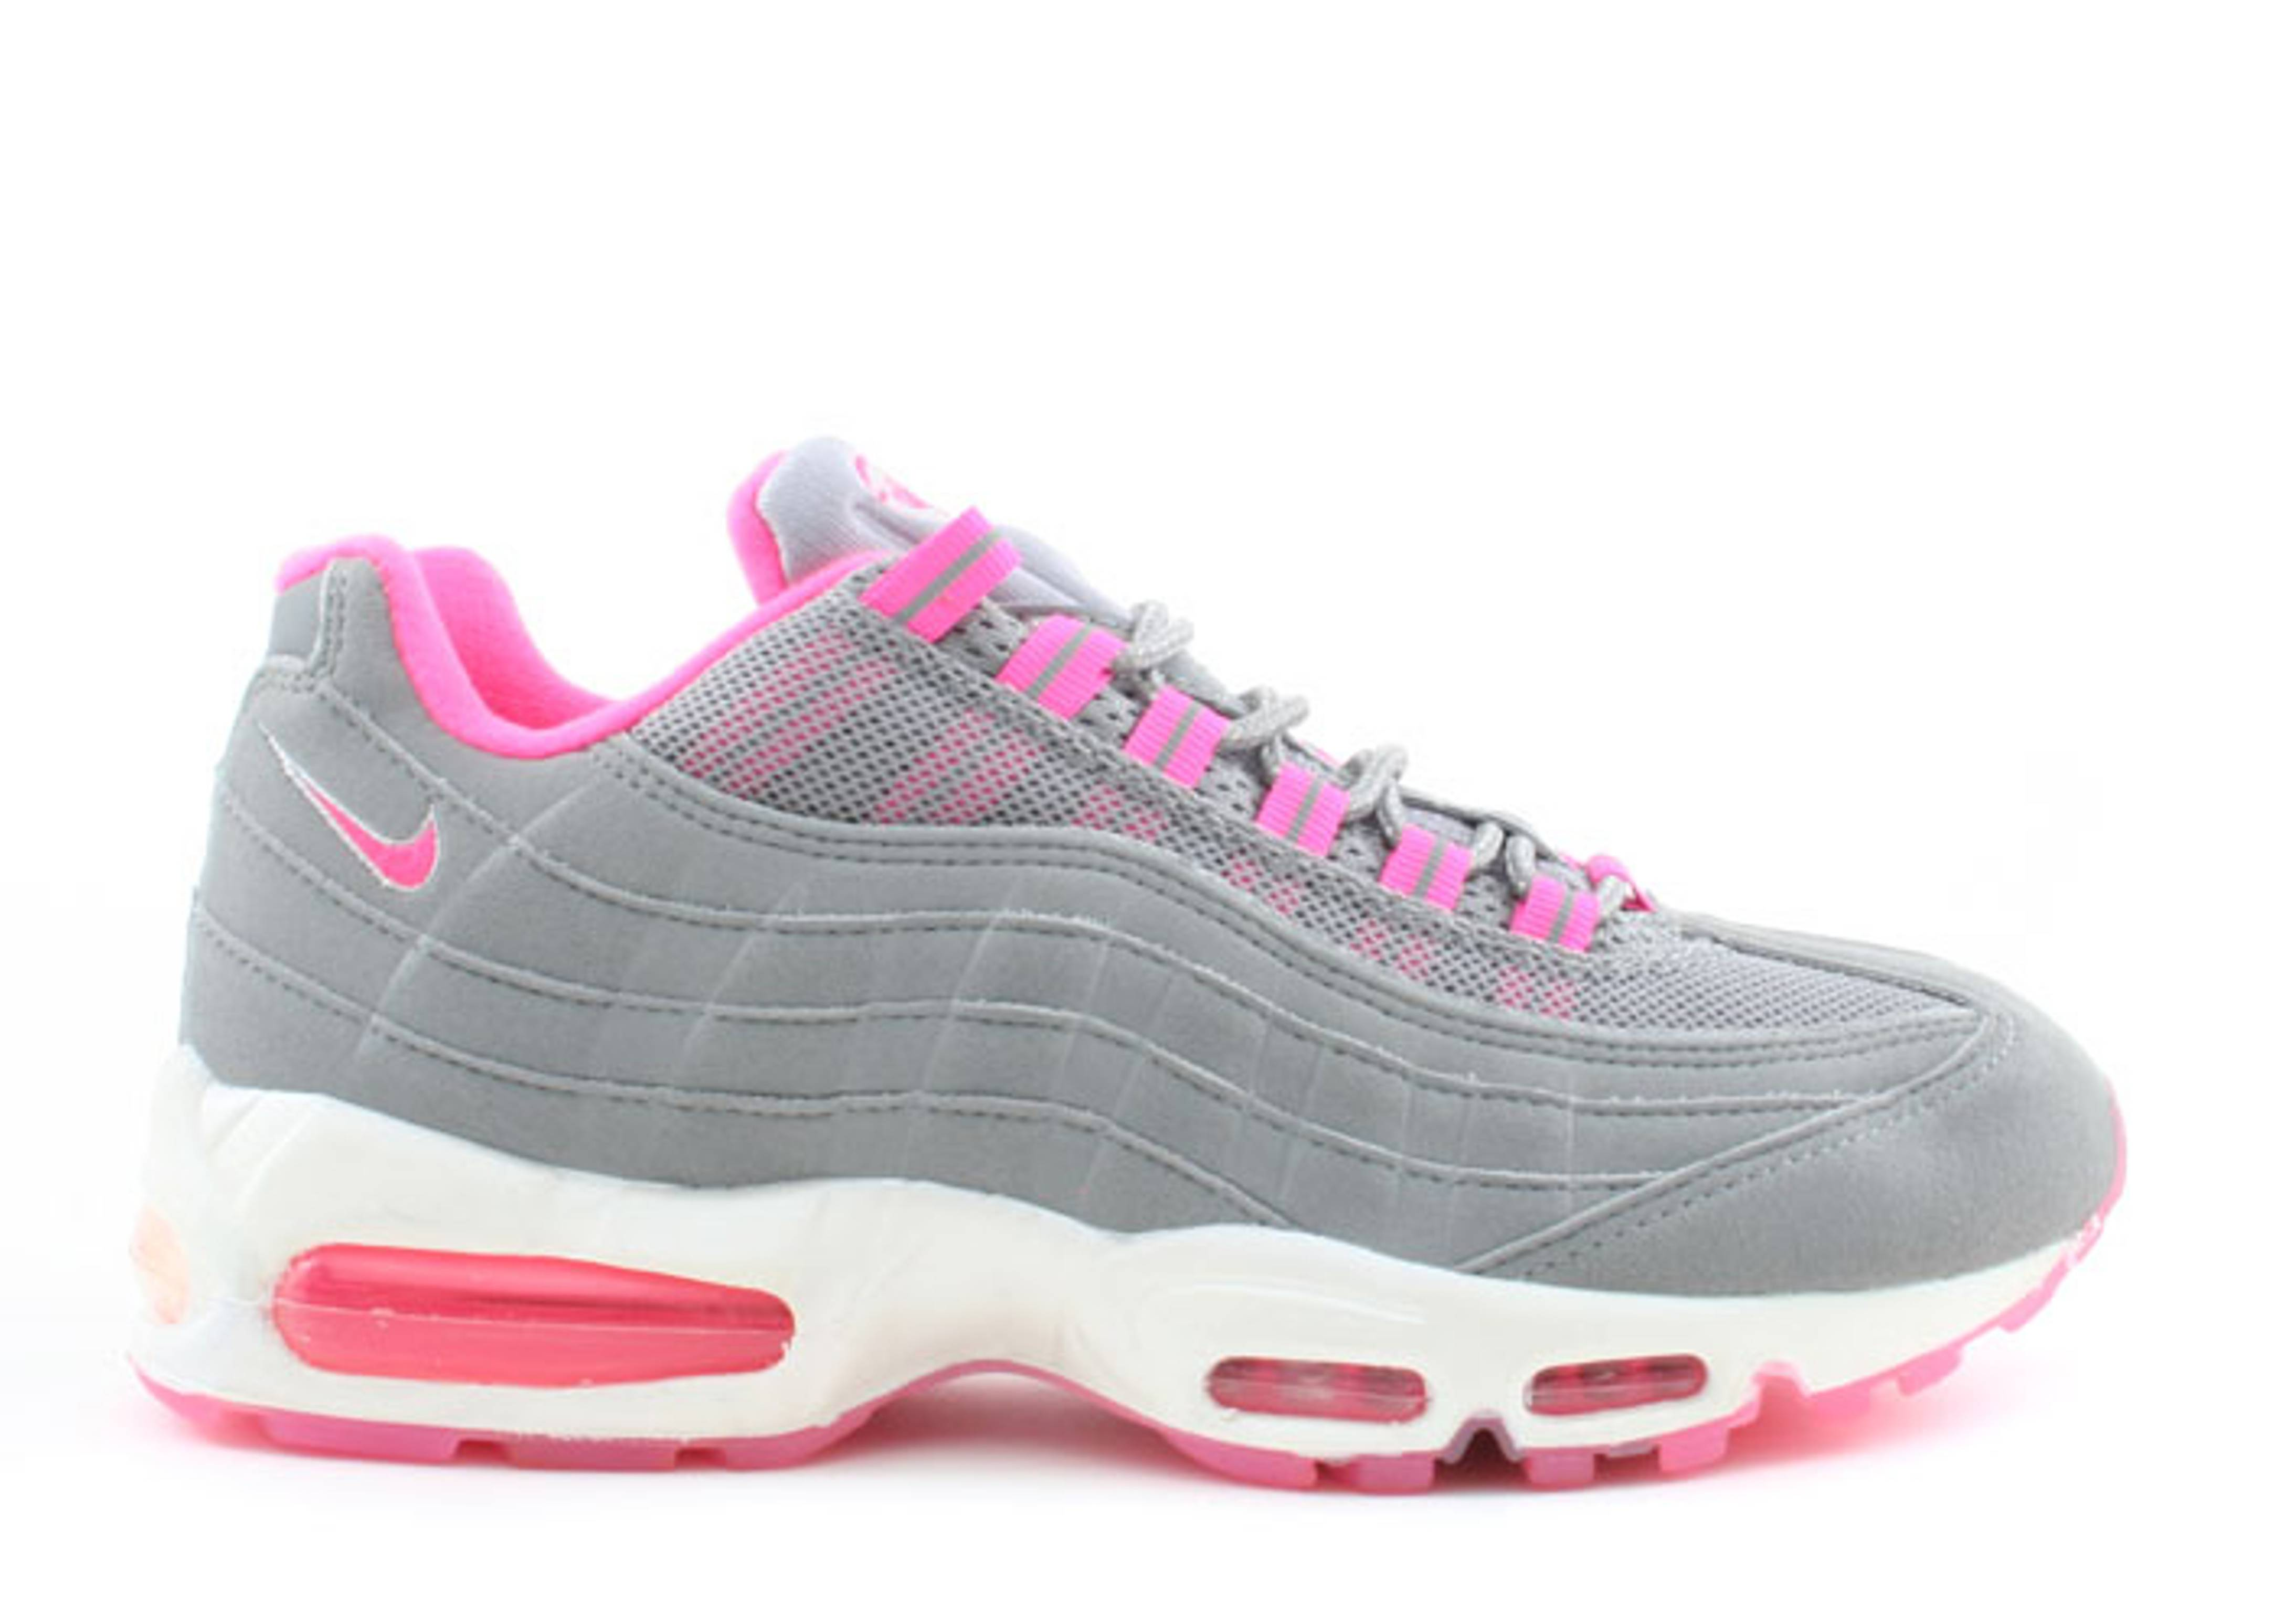 faf2515fe2d81 wholesale air max 95 lyserød and gray c9a27 d3dc7